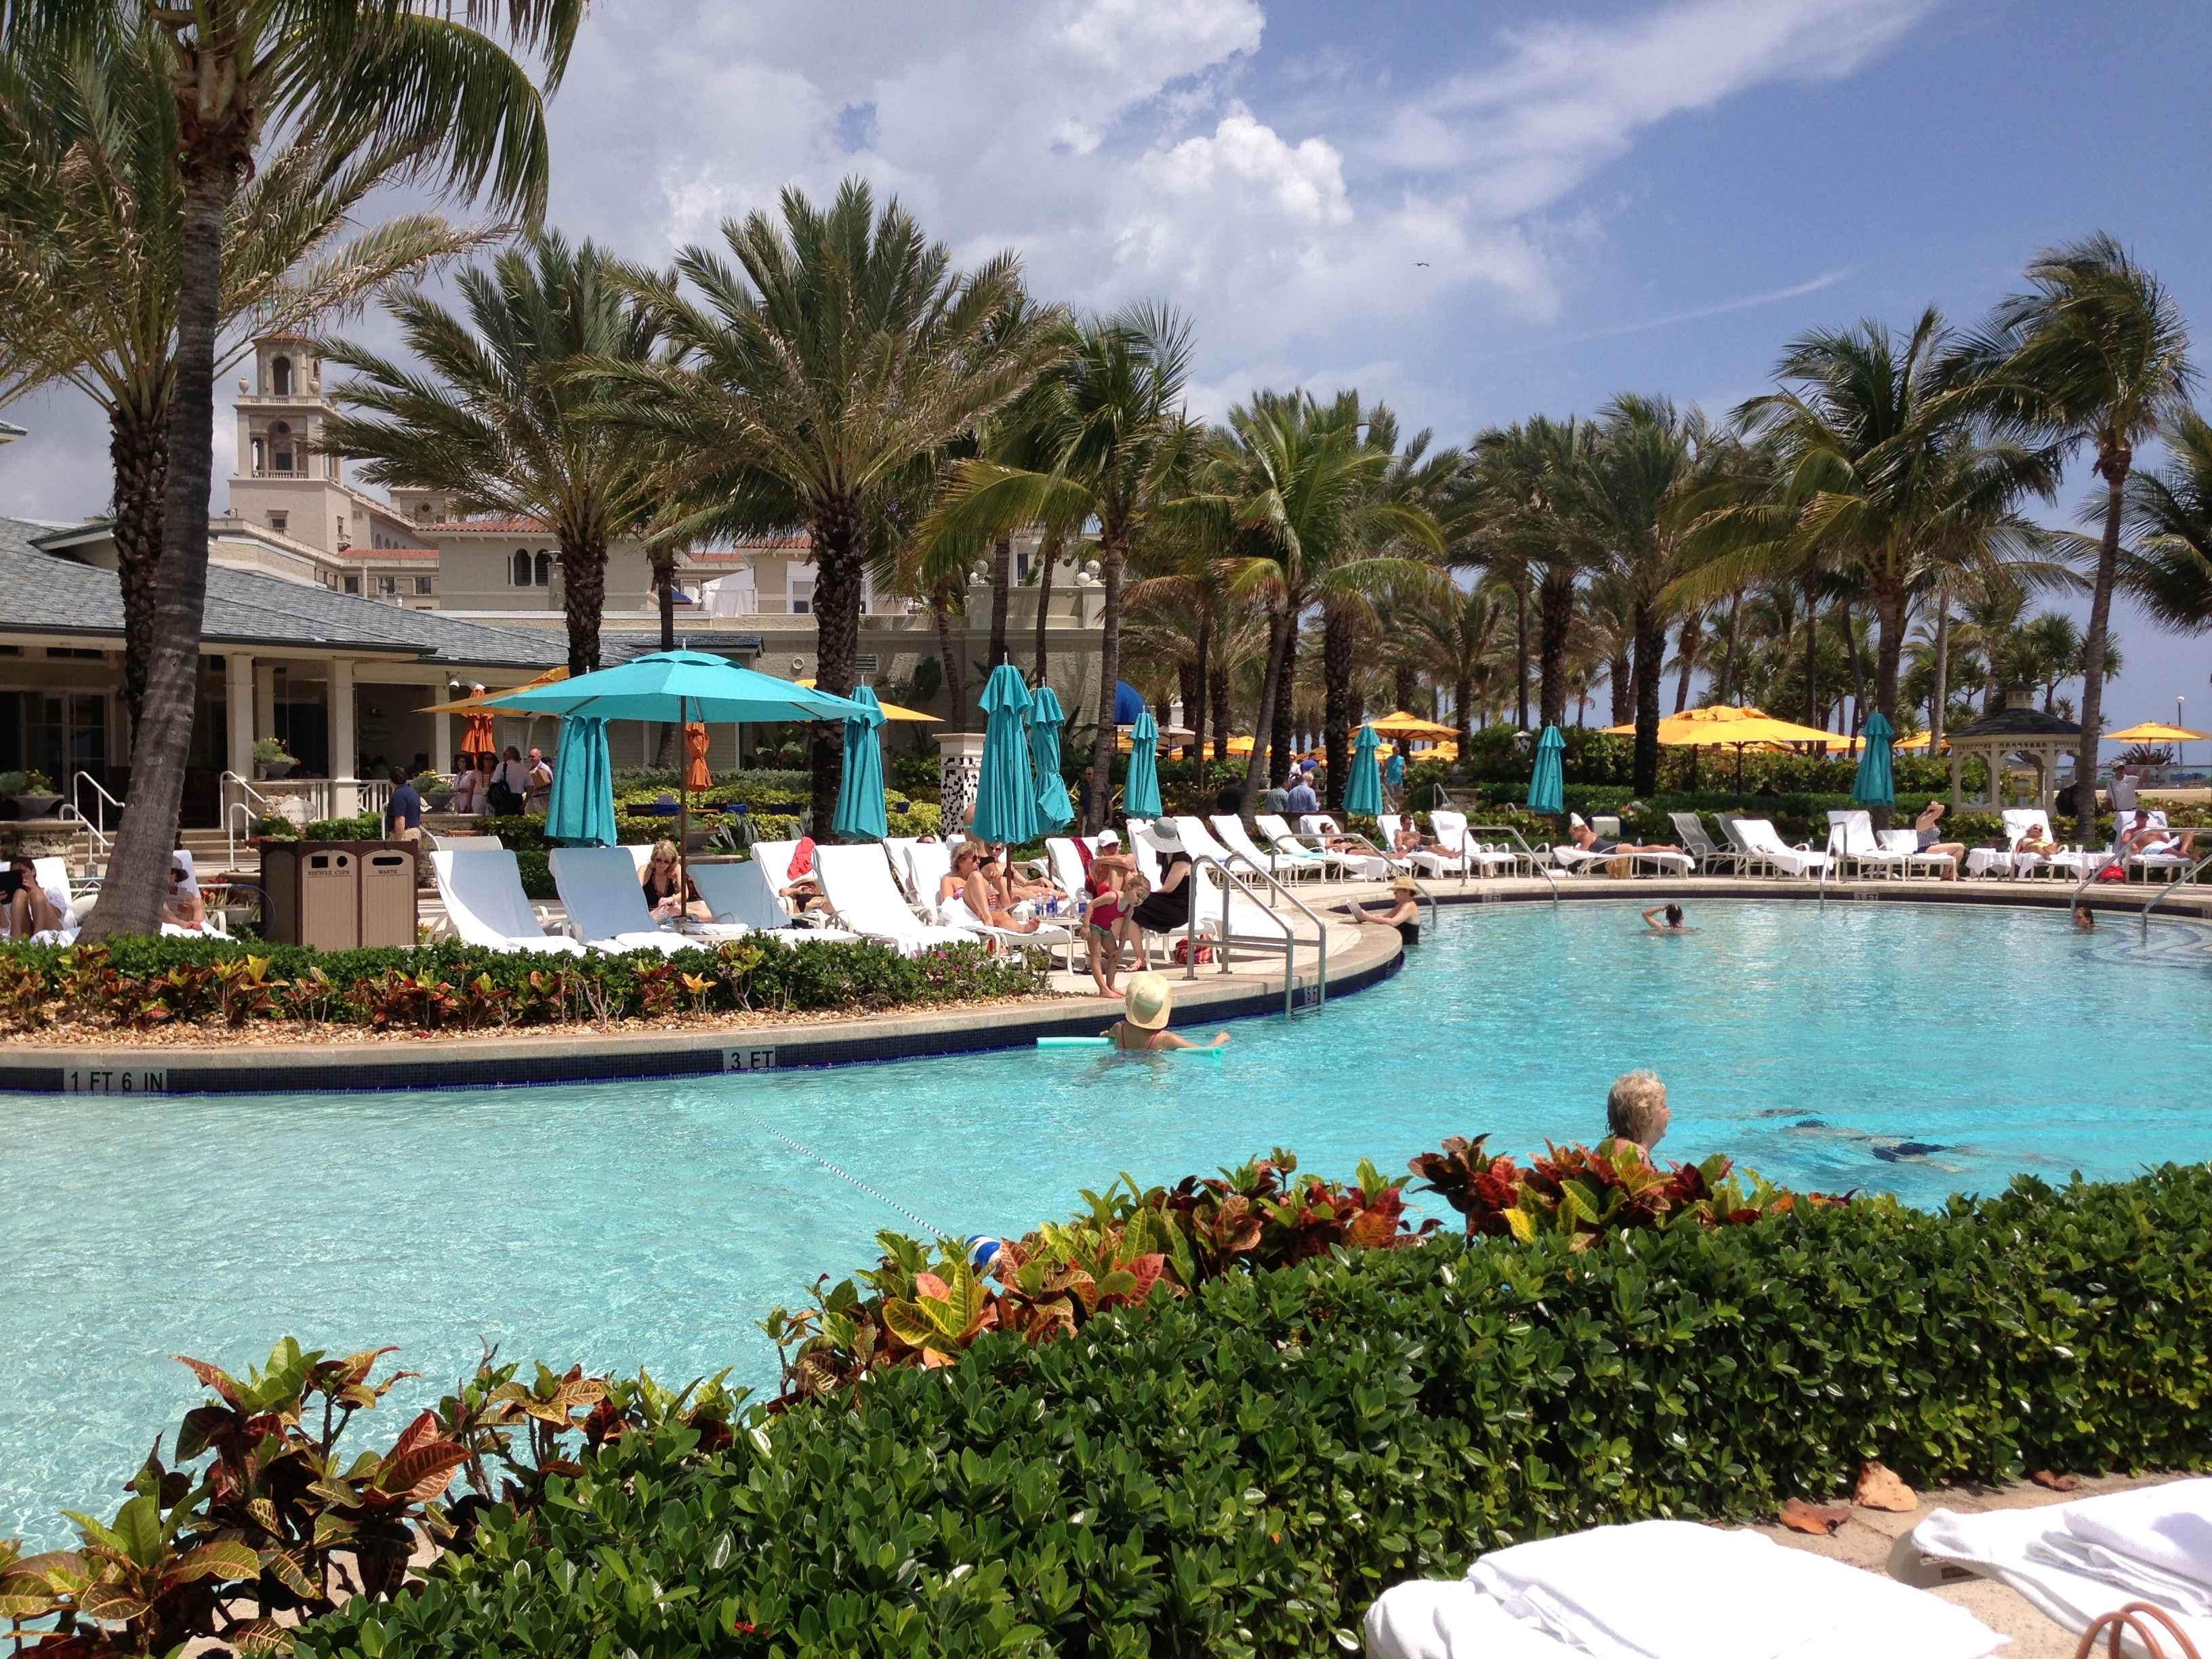 Palm beach girls weekend haute holidays travel - Palm beach pool ...